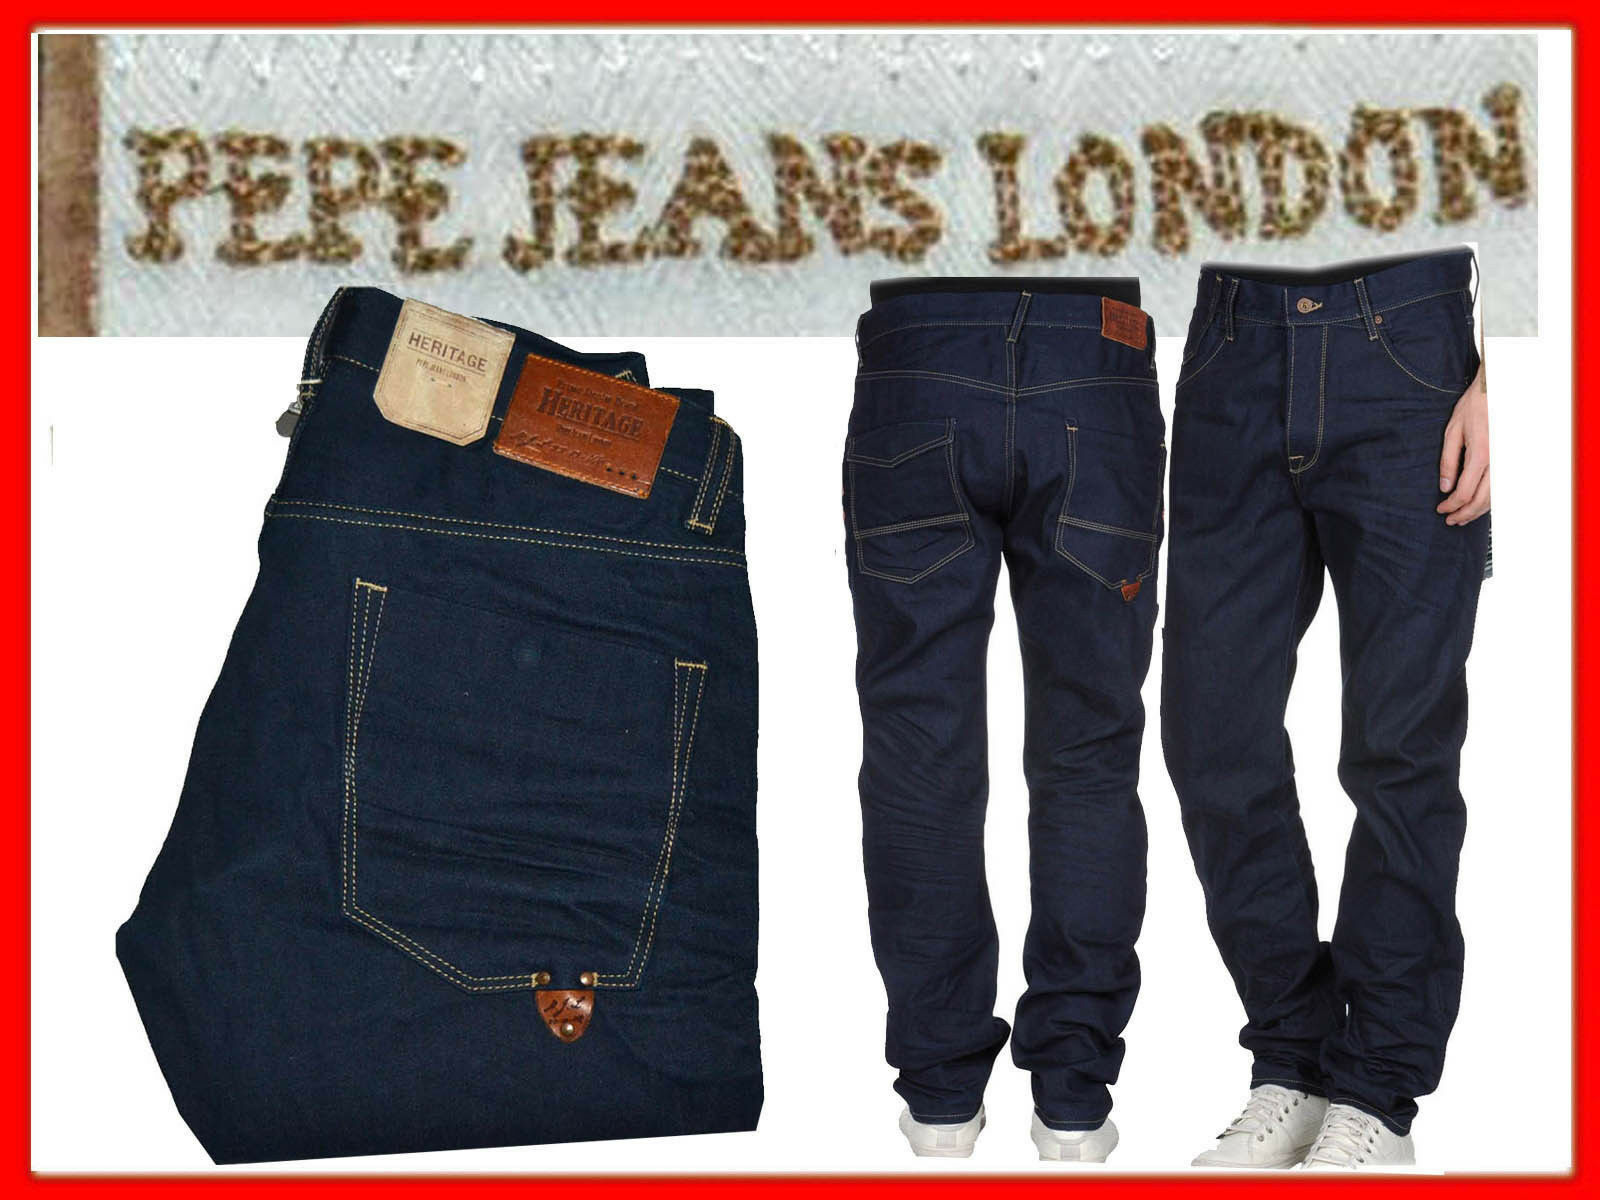 PEPE JEANS LONDON Jeans For Man Size 32 US   48 italy EVEN - 85 % ¡¡¡ PJ01 TOL2